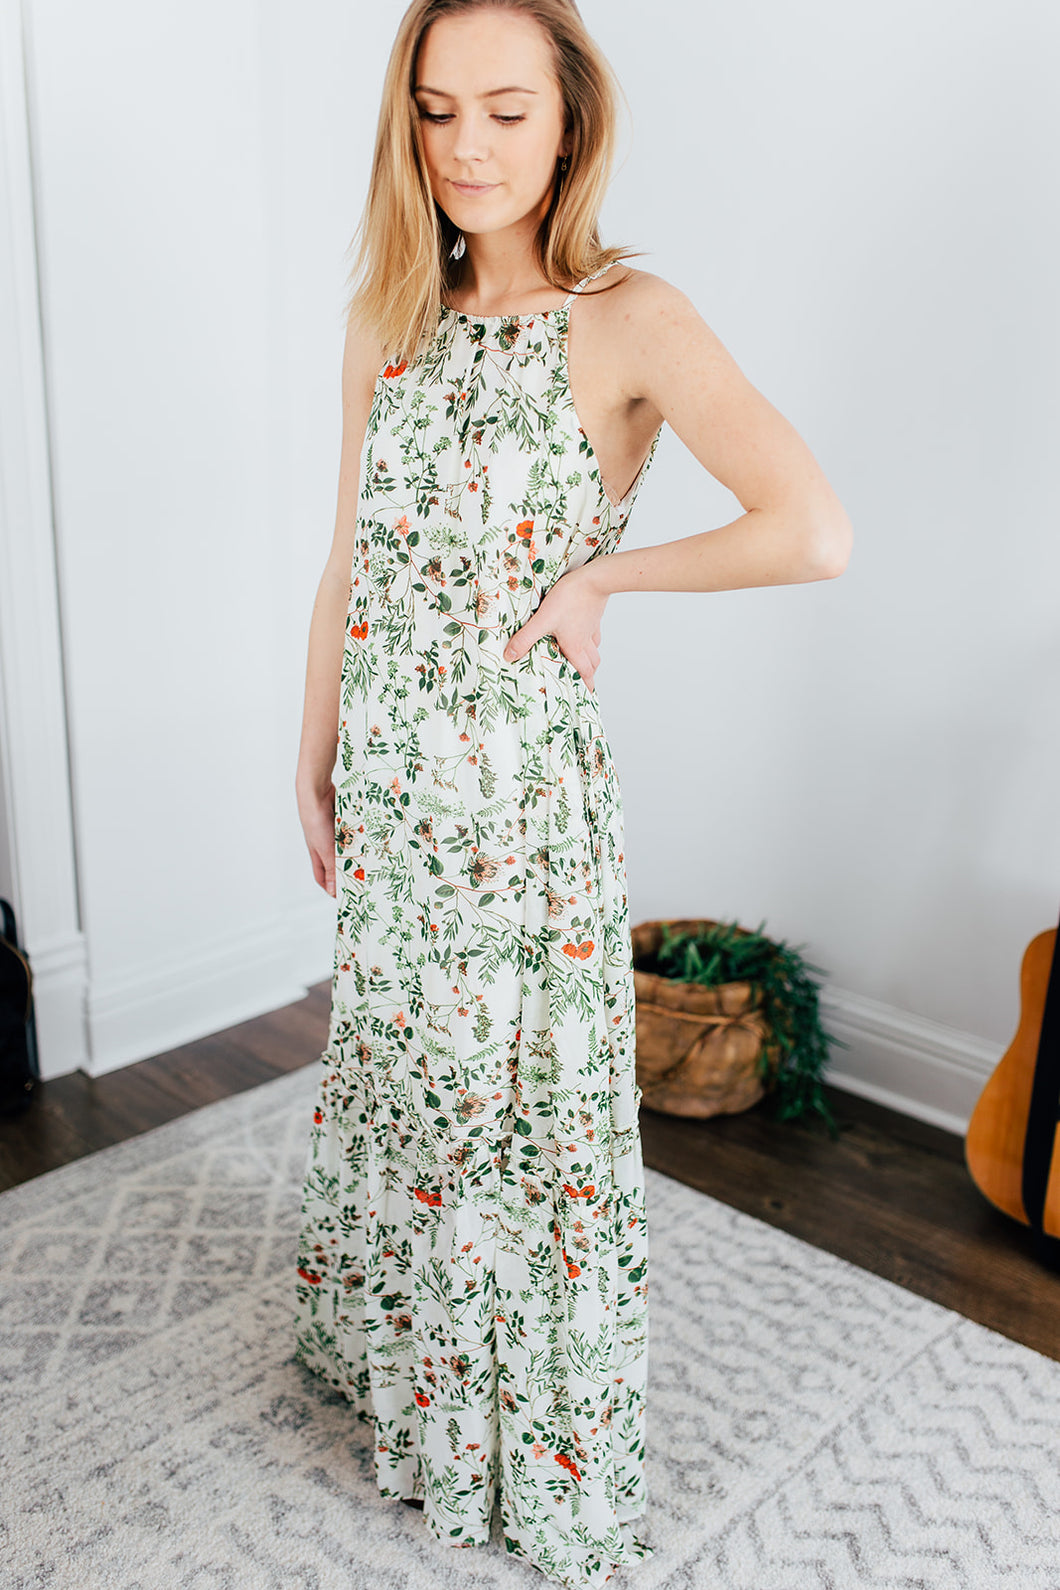 The Delray Maxi Dress